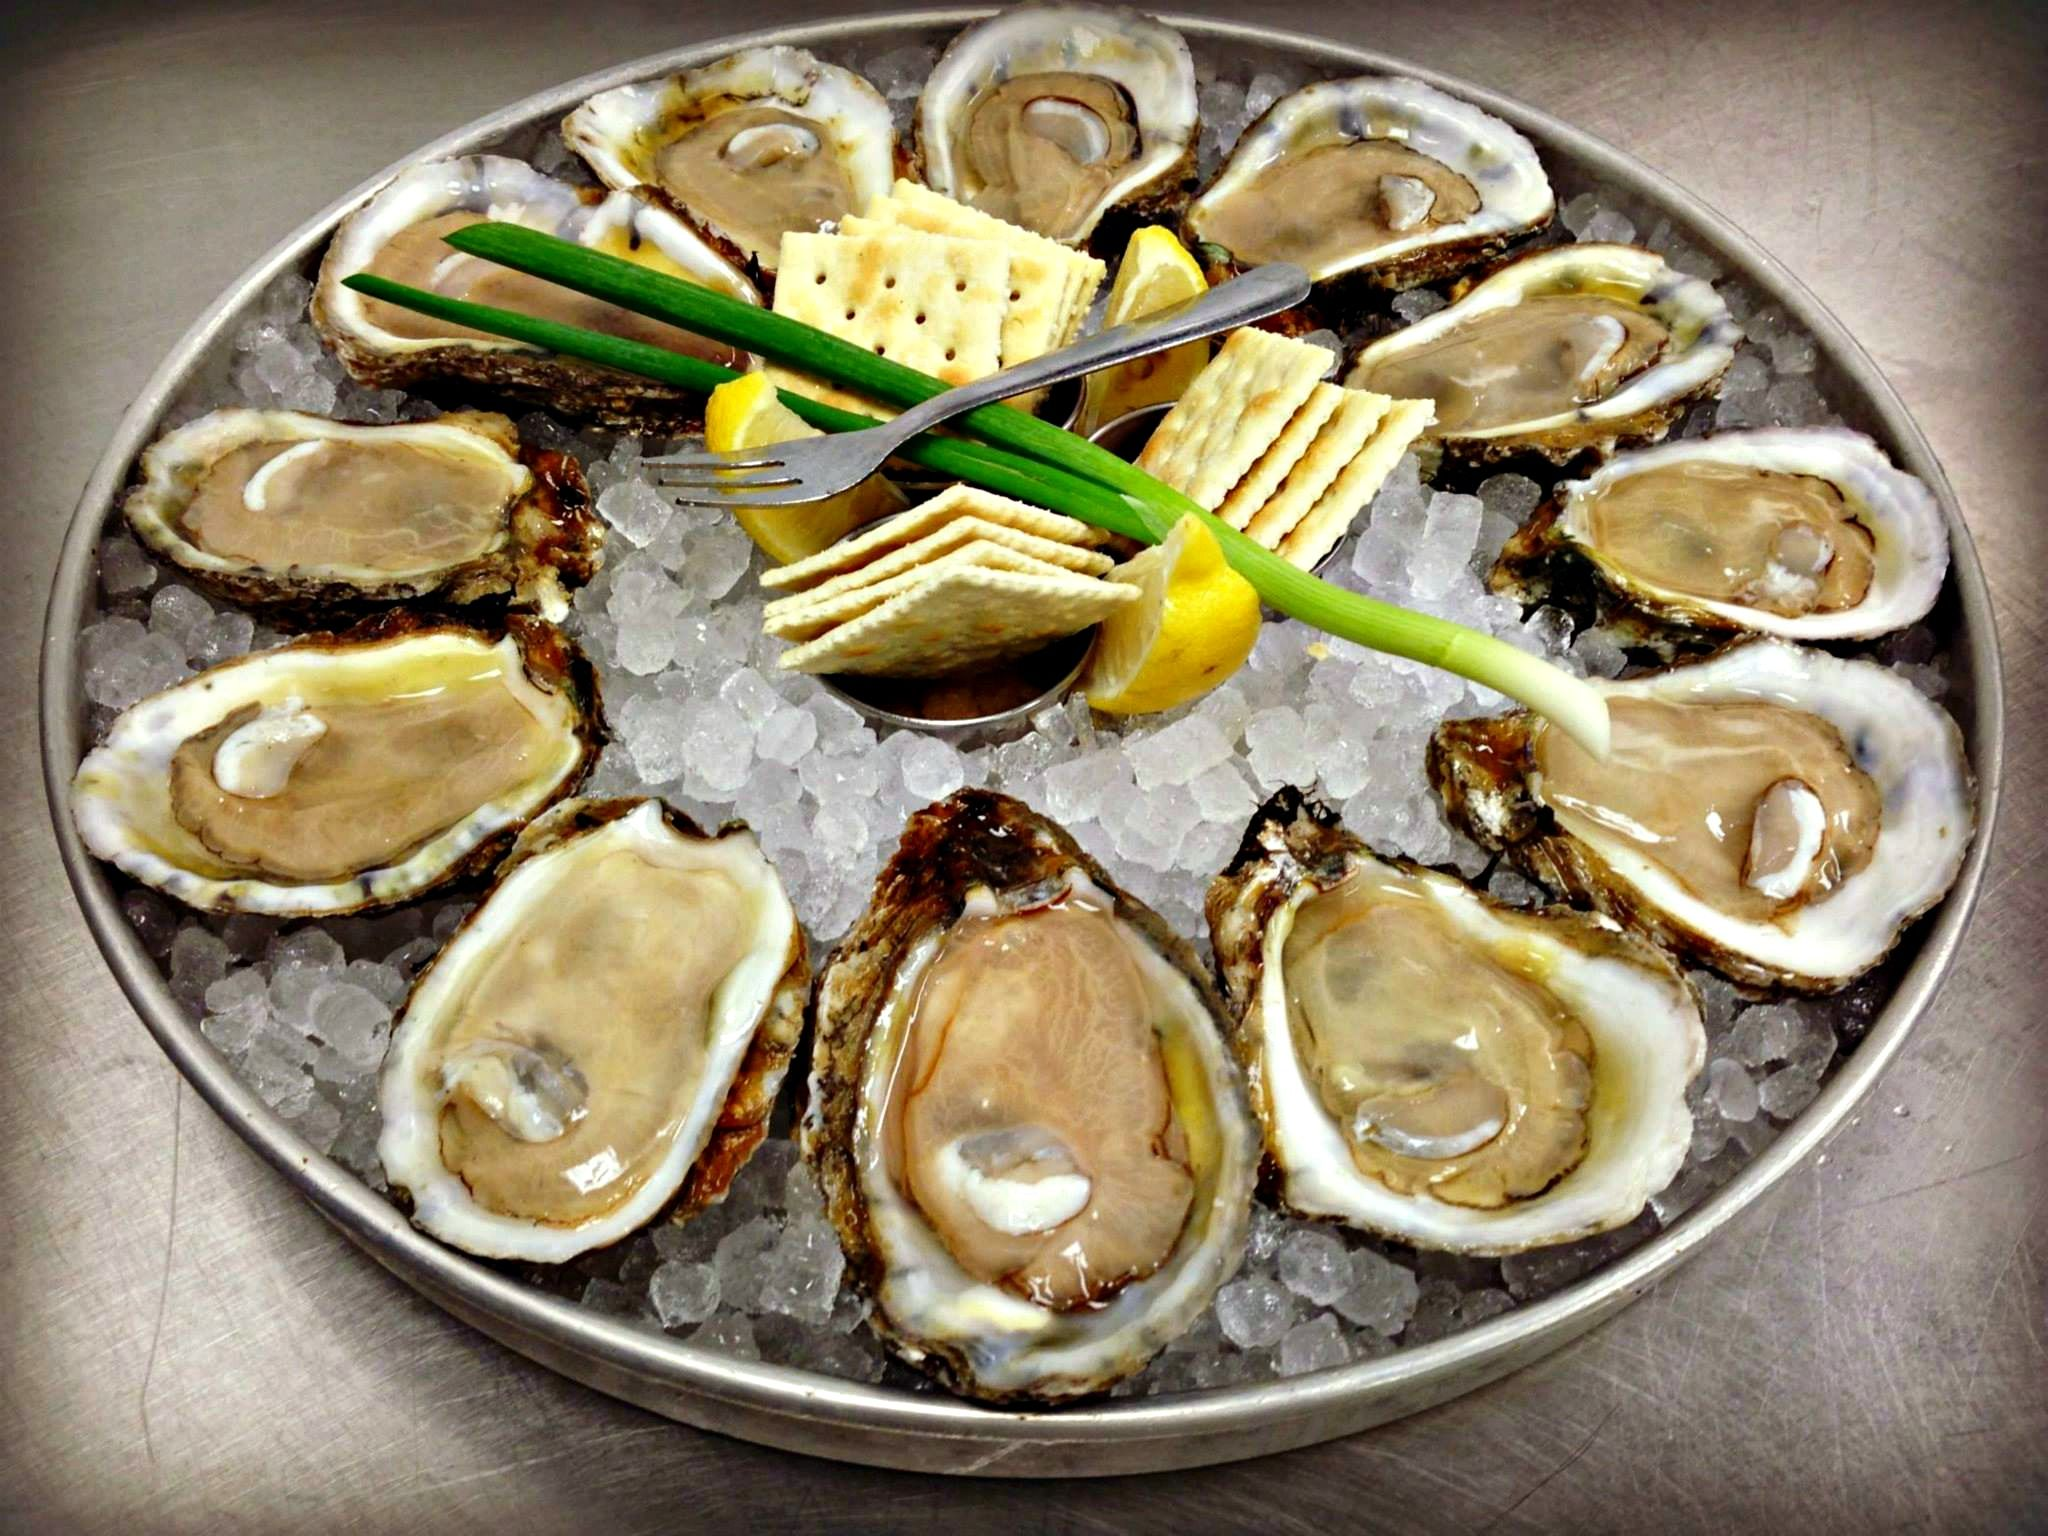 Fresh Oyster Platter At Boshamps Seafood And Oyster House Oyster House Fresh Oysters Coast Restaurant,How To Cook A Fully Cooked Ham